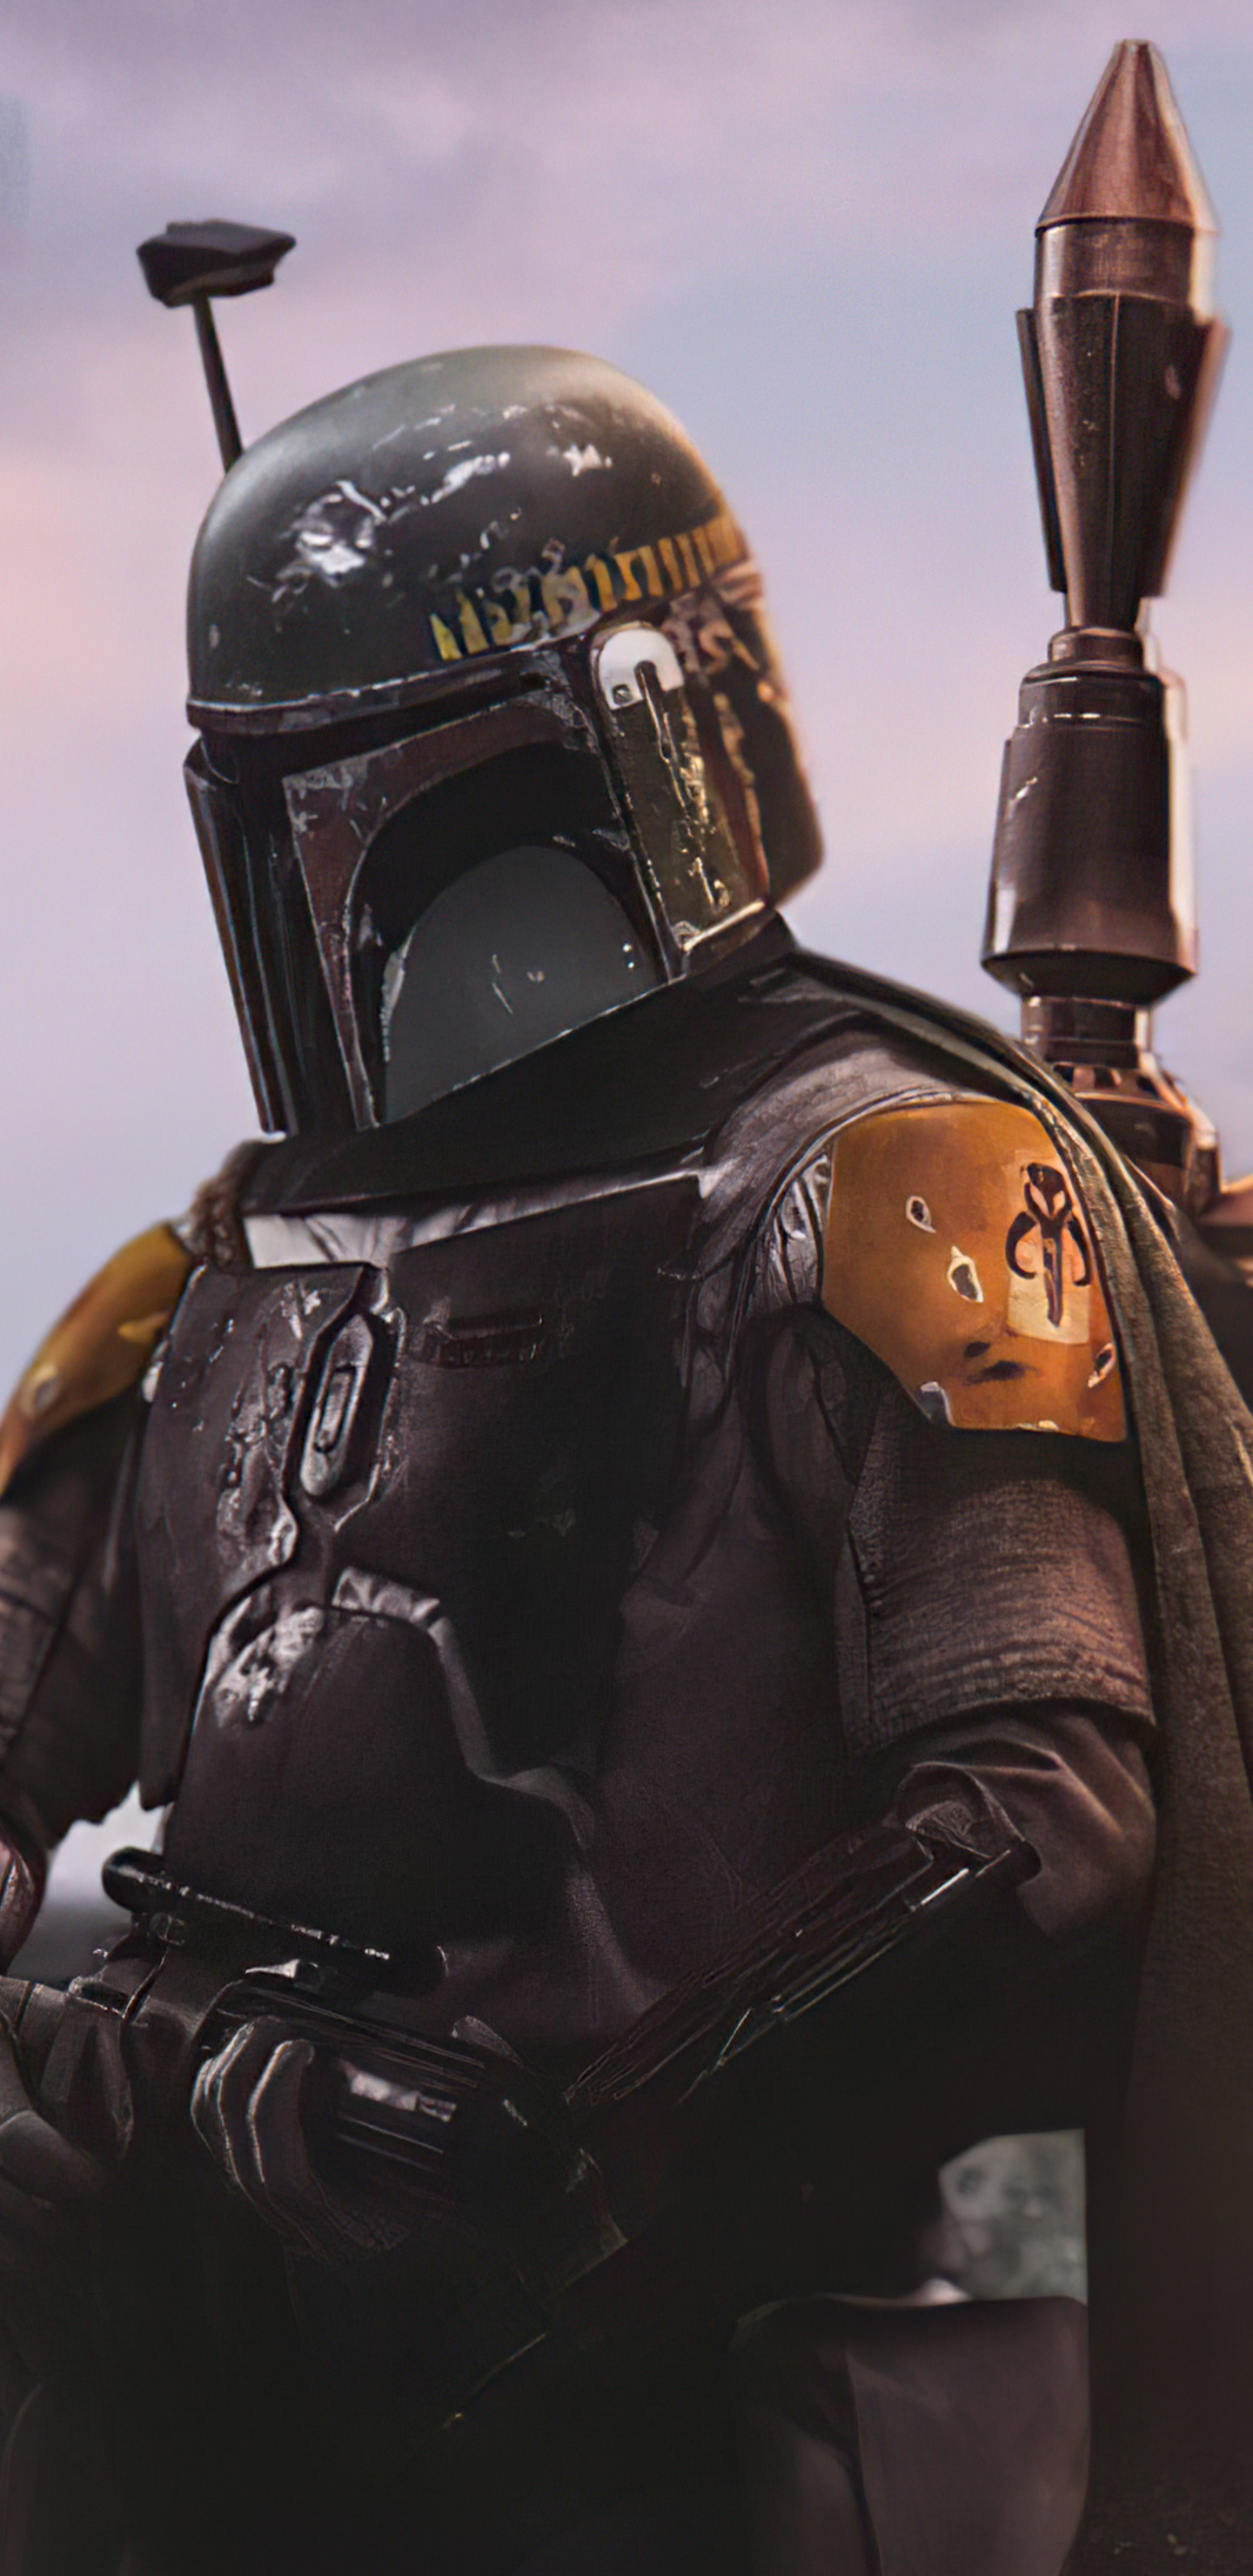 1440x2960 The Mandalorian Season 2 4k Samsung Galaxy Note 9 8 S9 S8 S8 Qhd Hd 4k Wallpapers Images Backgrounds Photos And Pictures